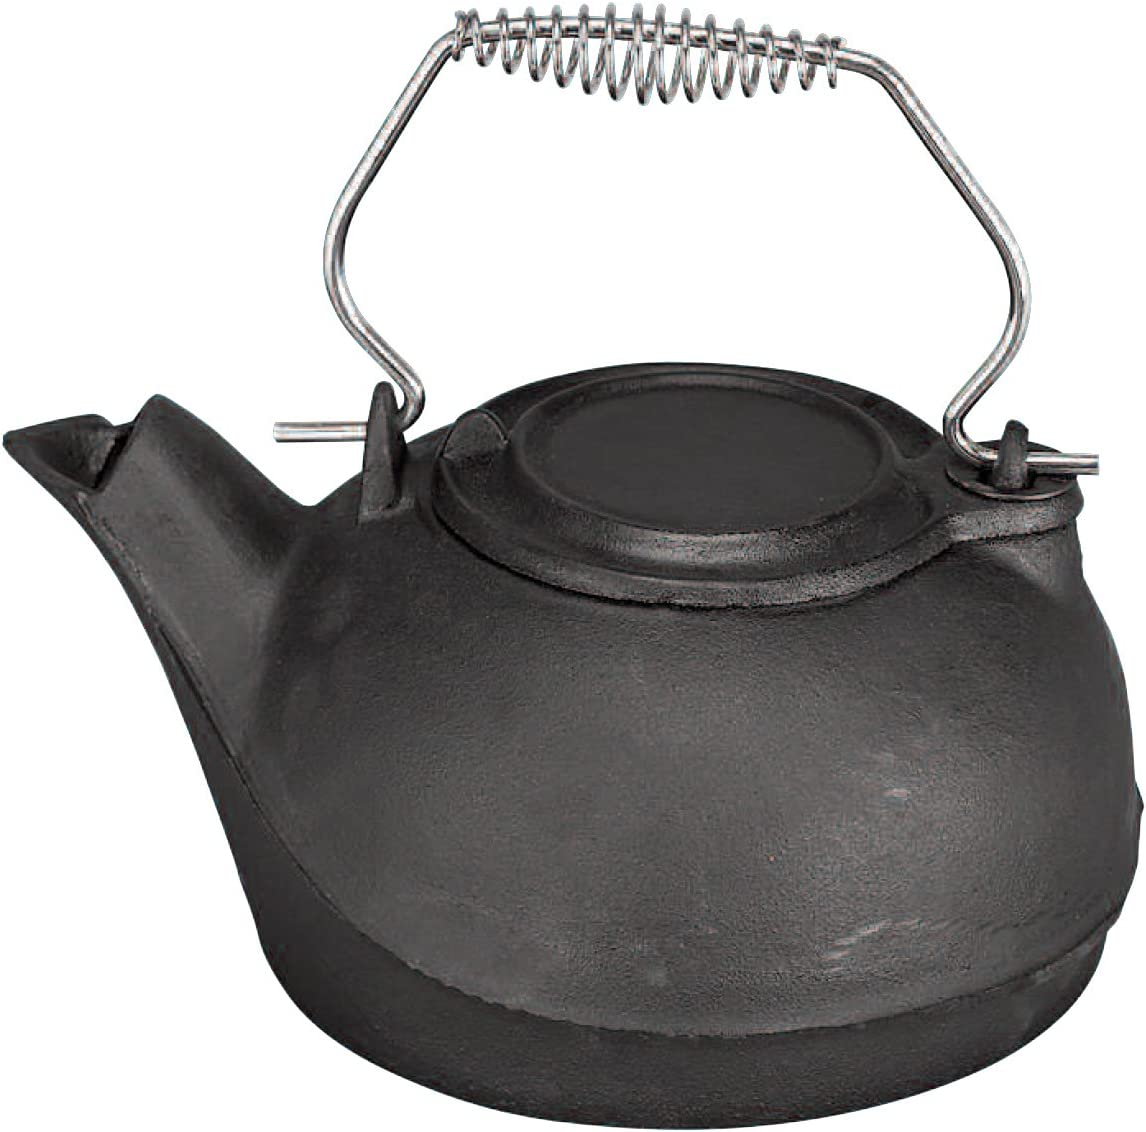 Fashionable Pleasant Credence Hearth Kettle Steamer